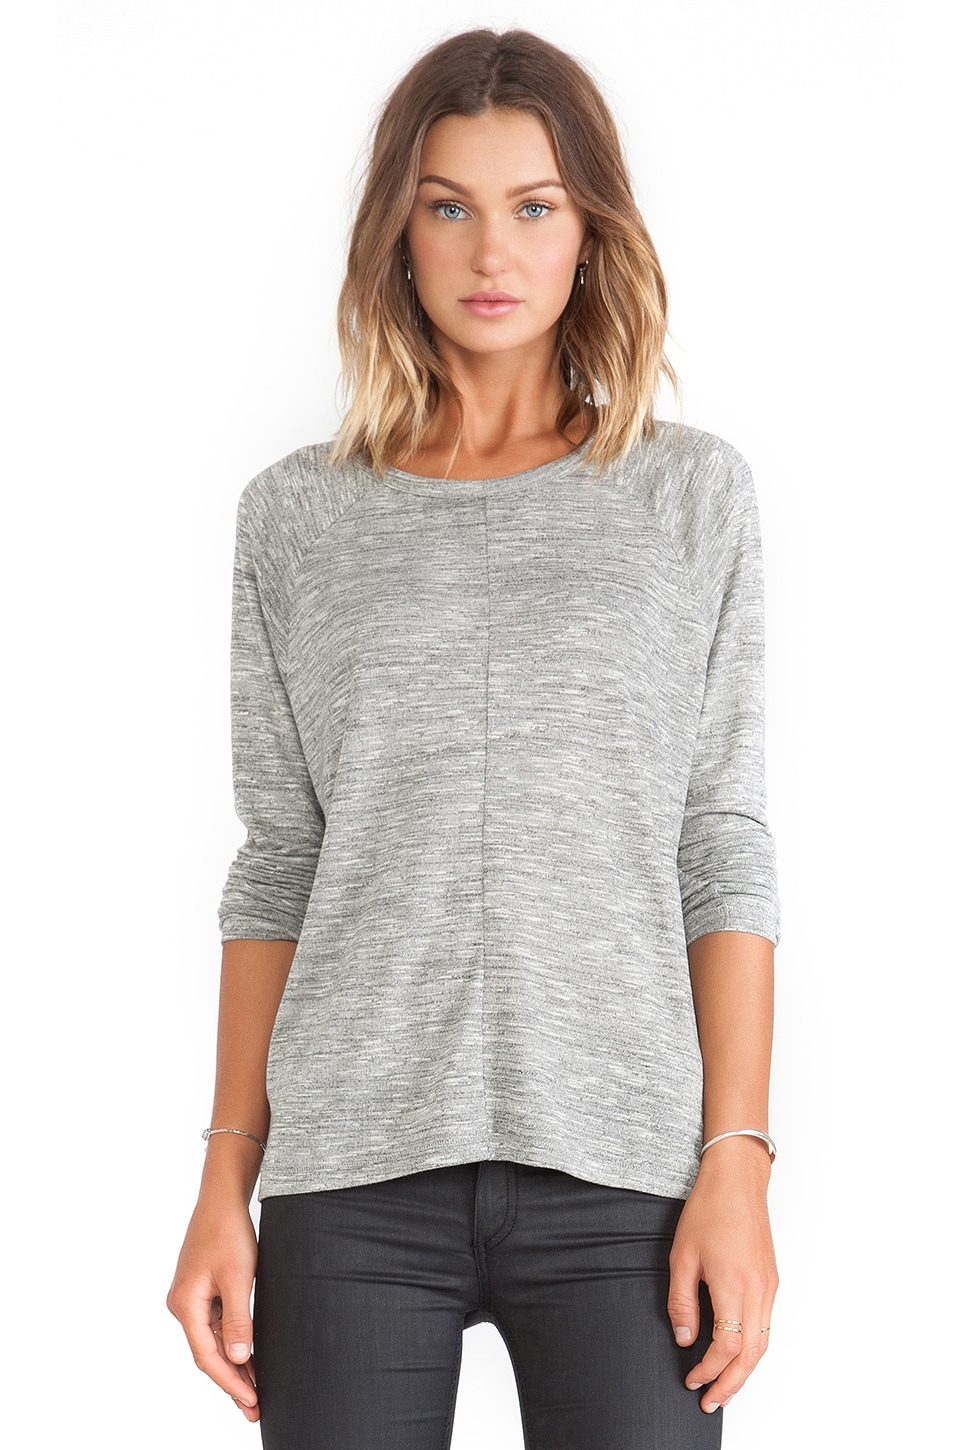 rag & bone/JEAN Nicole Tee in Light Grey